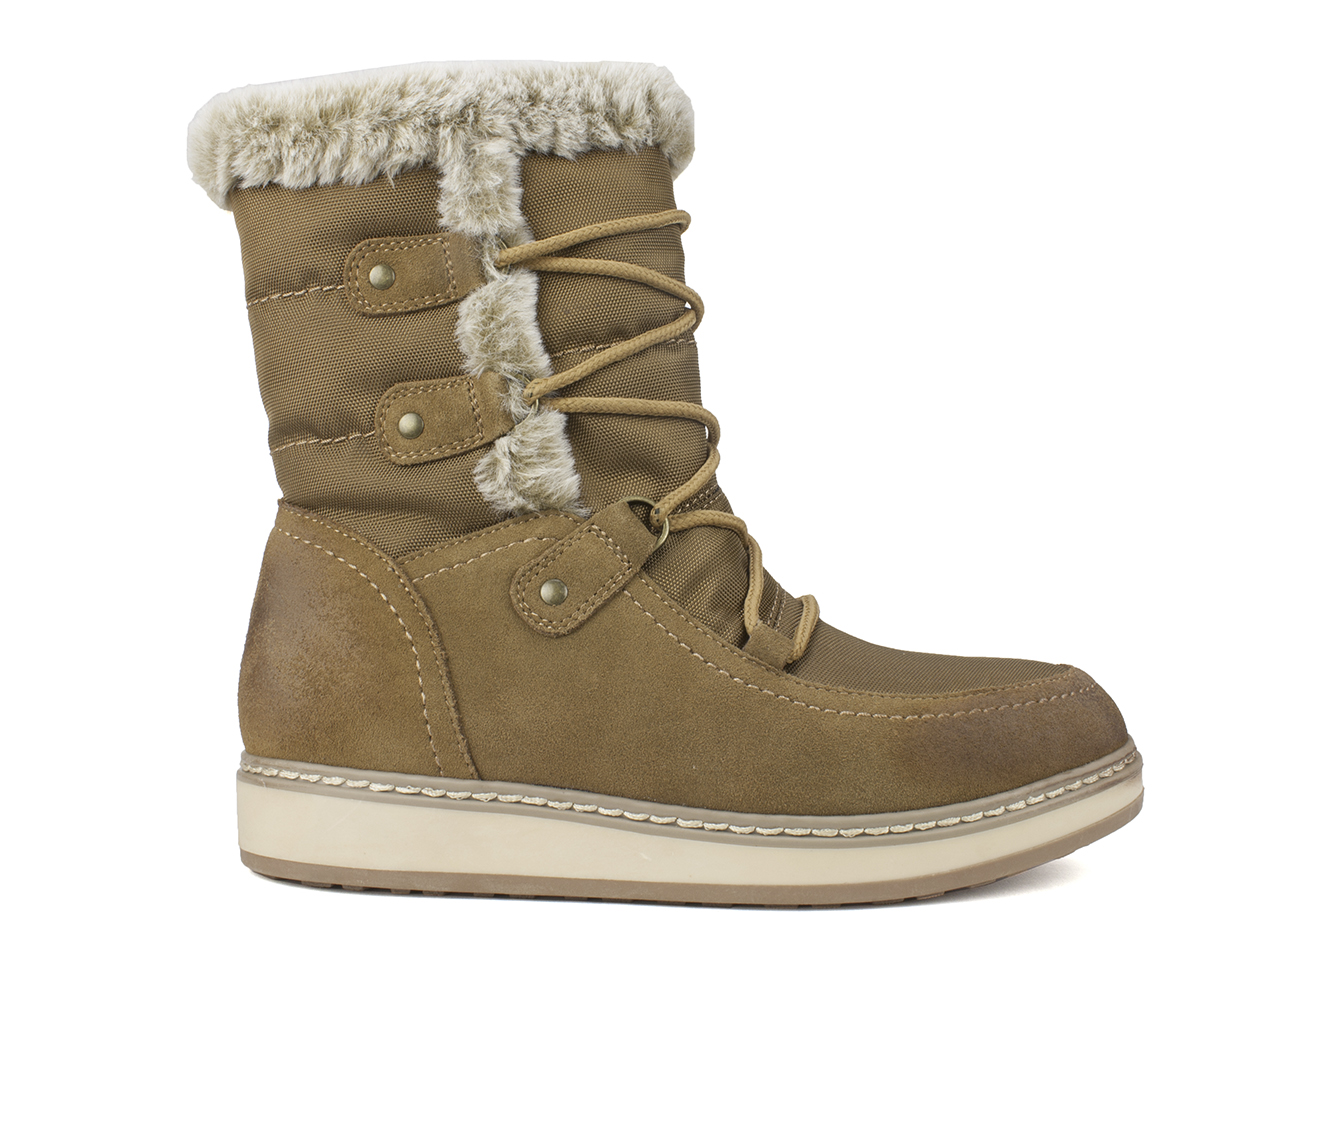 White Mountain Tansley Women's Boots (Brown - Suede)